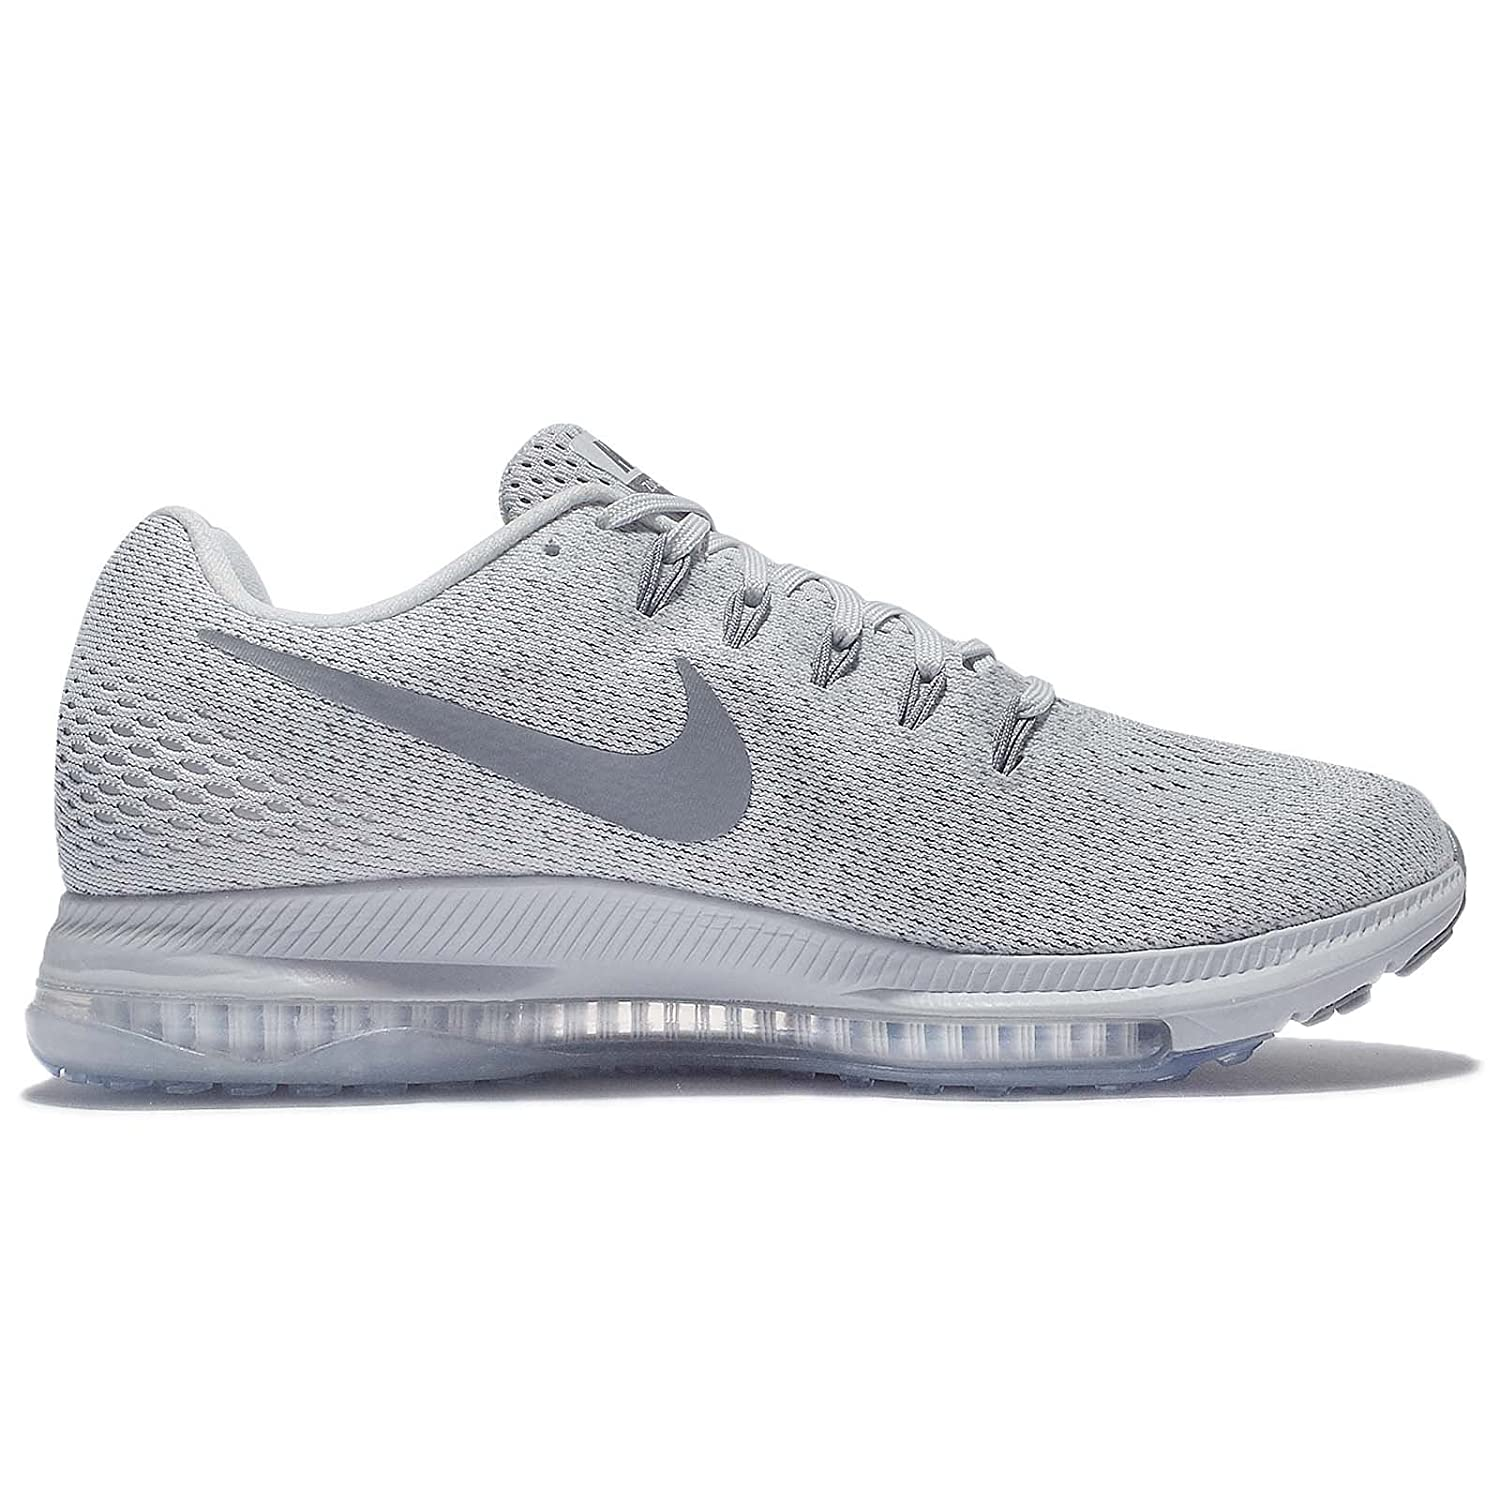 NIKE Women's Zoom All Out Low Running Shoes B072FKJZLX 6 B(M) US|Pure Platinum/Cool Grey